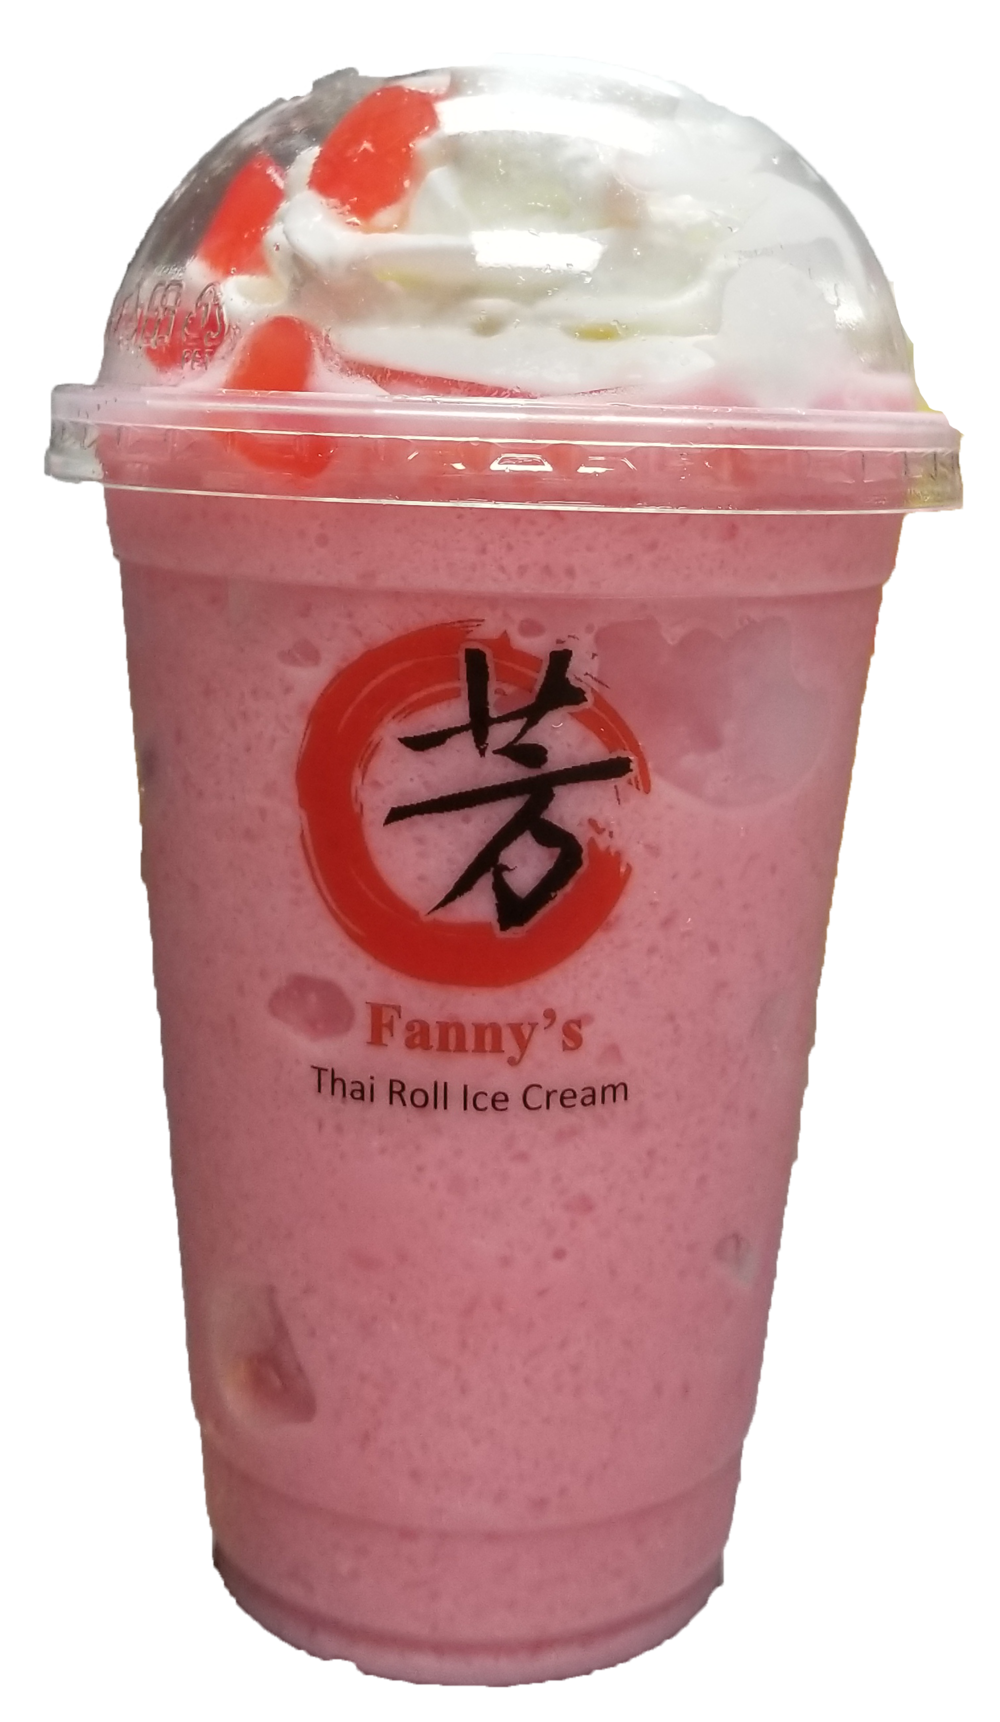 Strawberry and Vanilla milk shake flavor blended with ice with whipped cream and Heart shaped Jelly on top